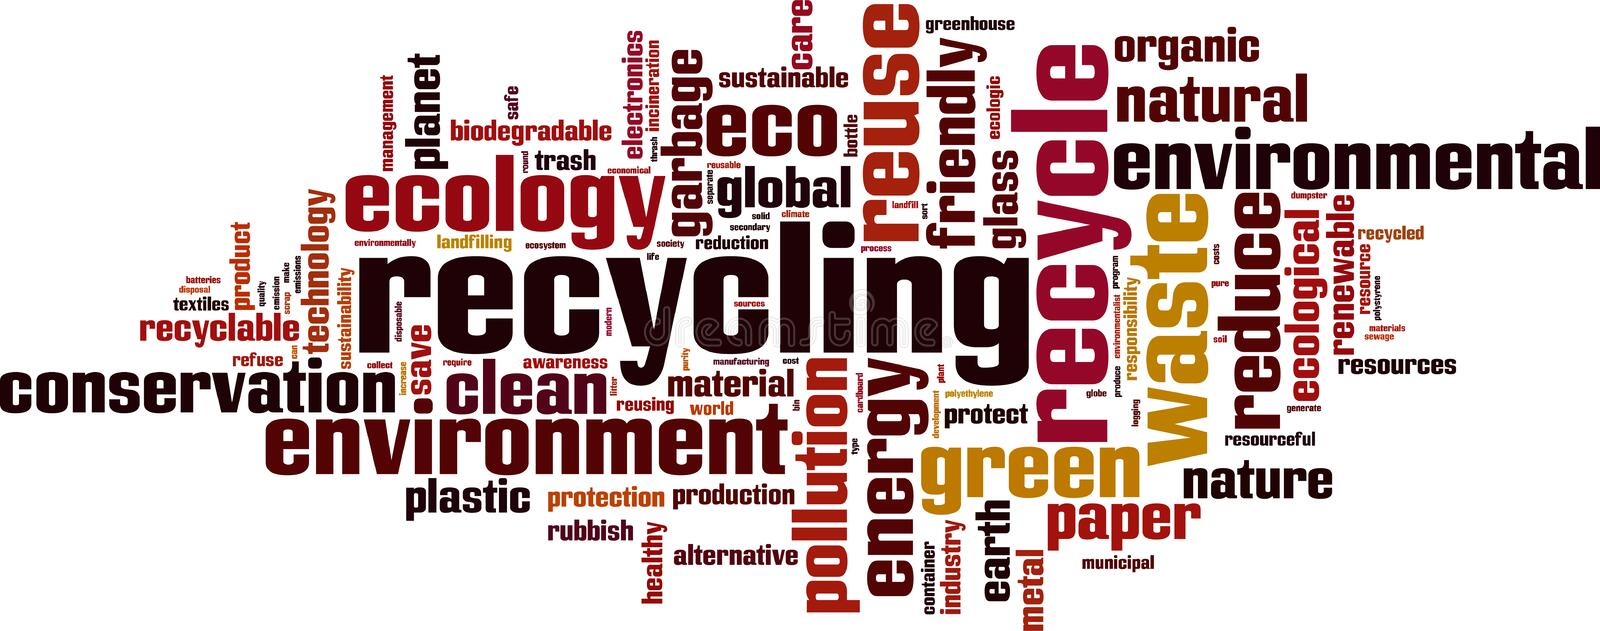 Recycling word cloud. Concept. Vector illustration royalty free illustration